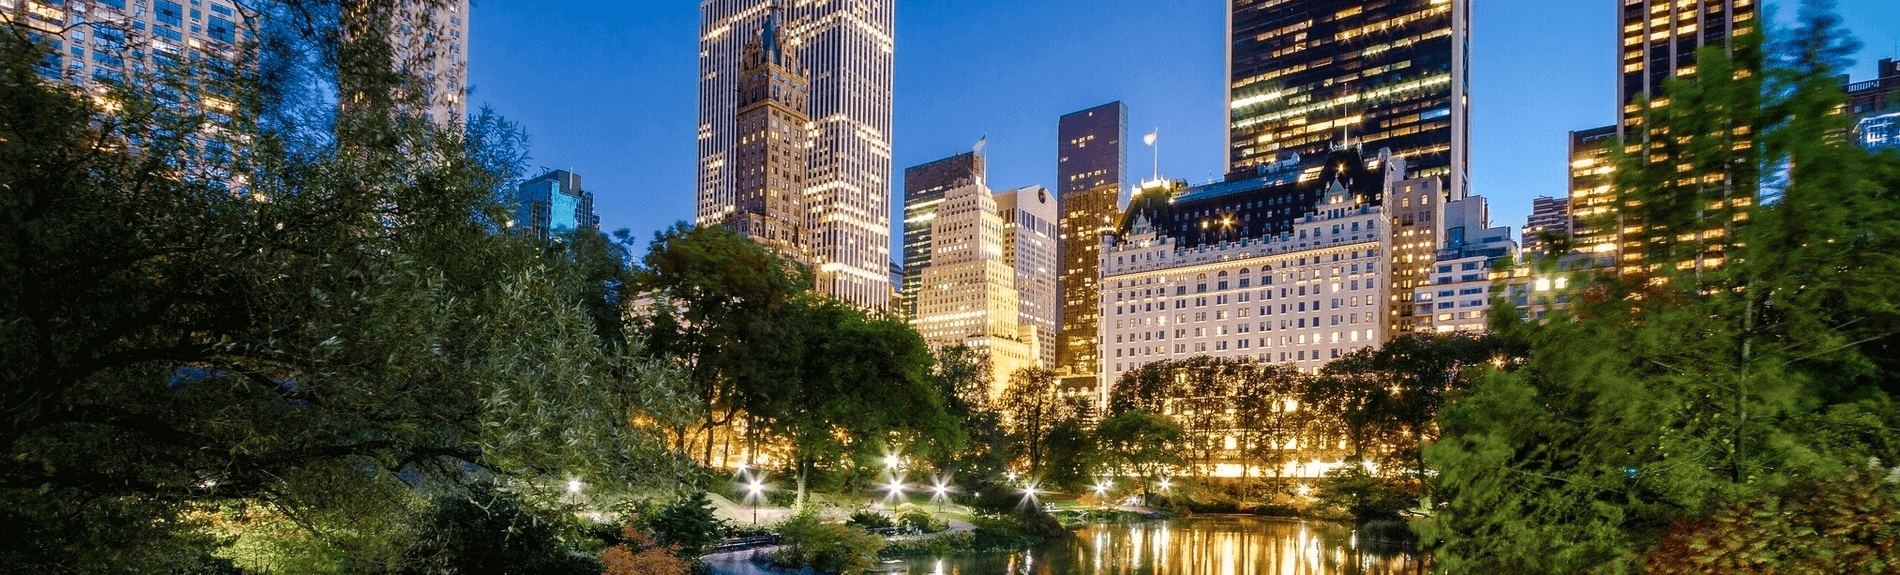 Slider-Full-Background-CentralPark